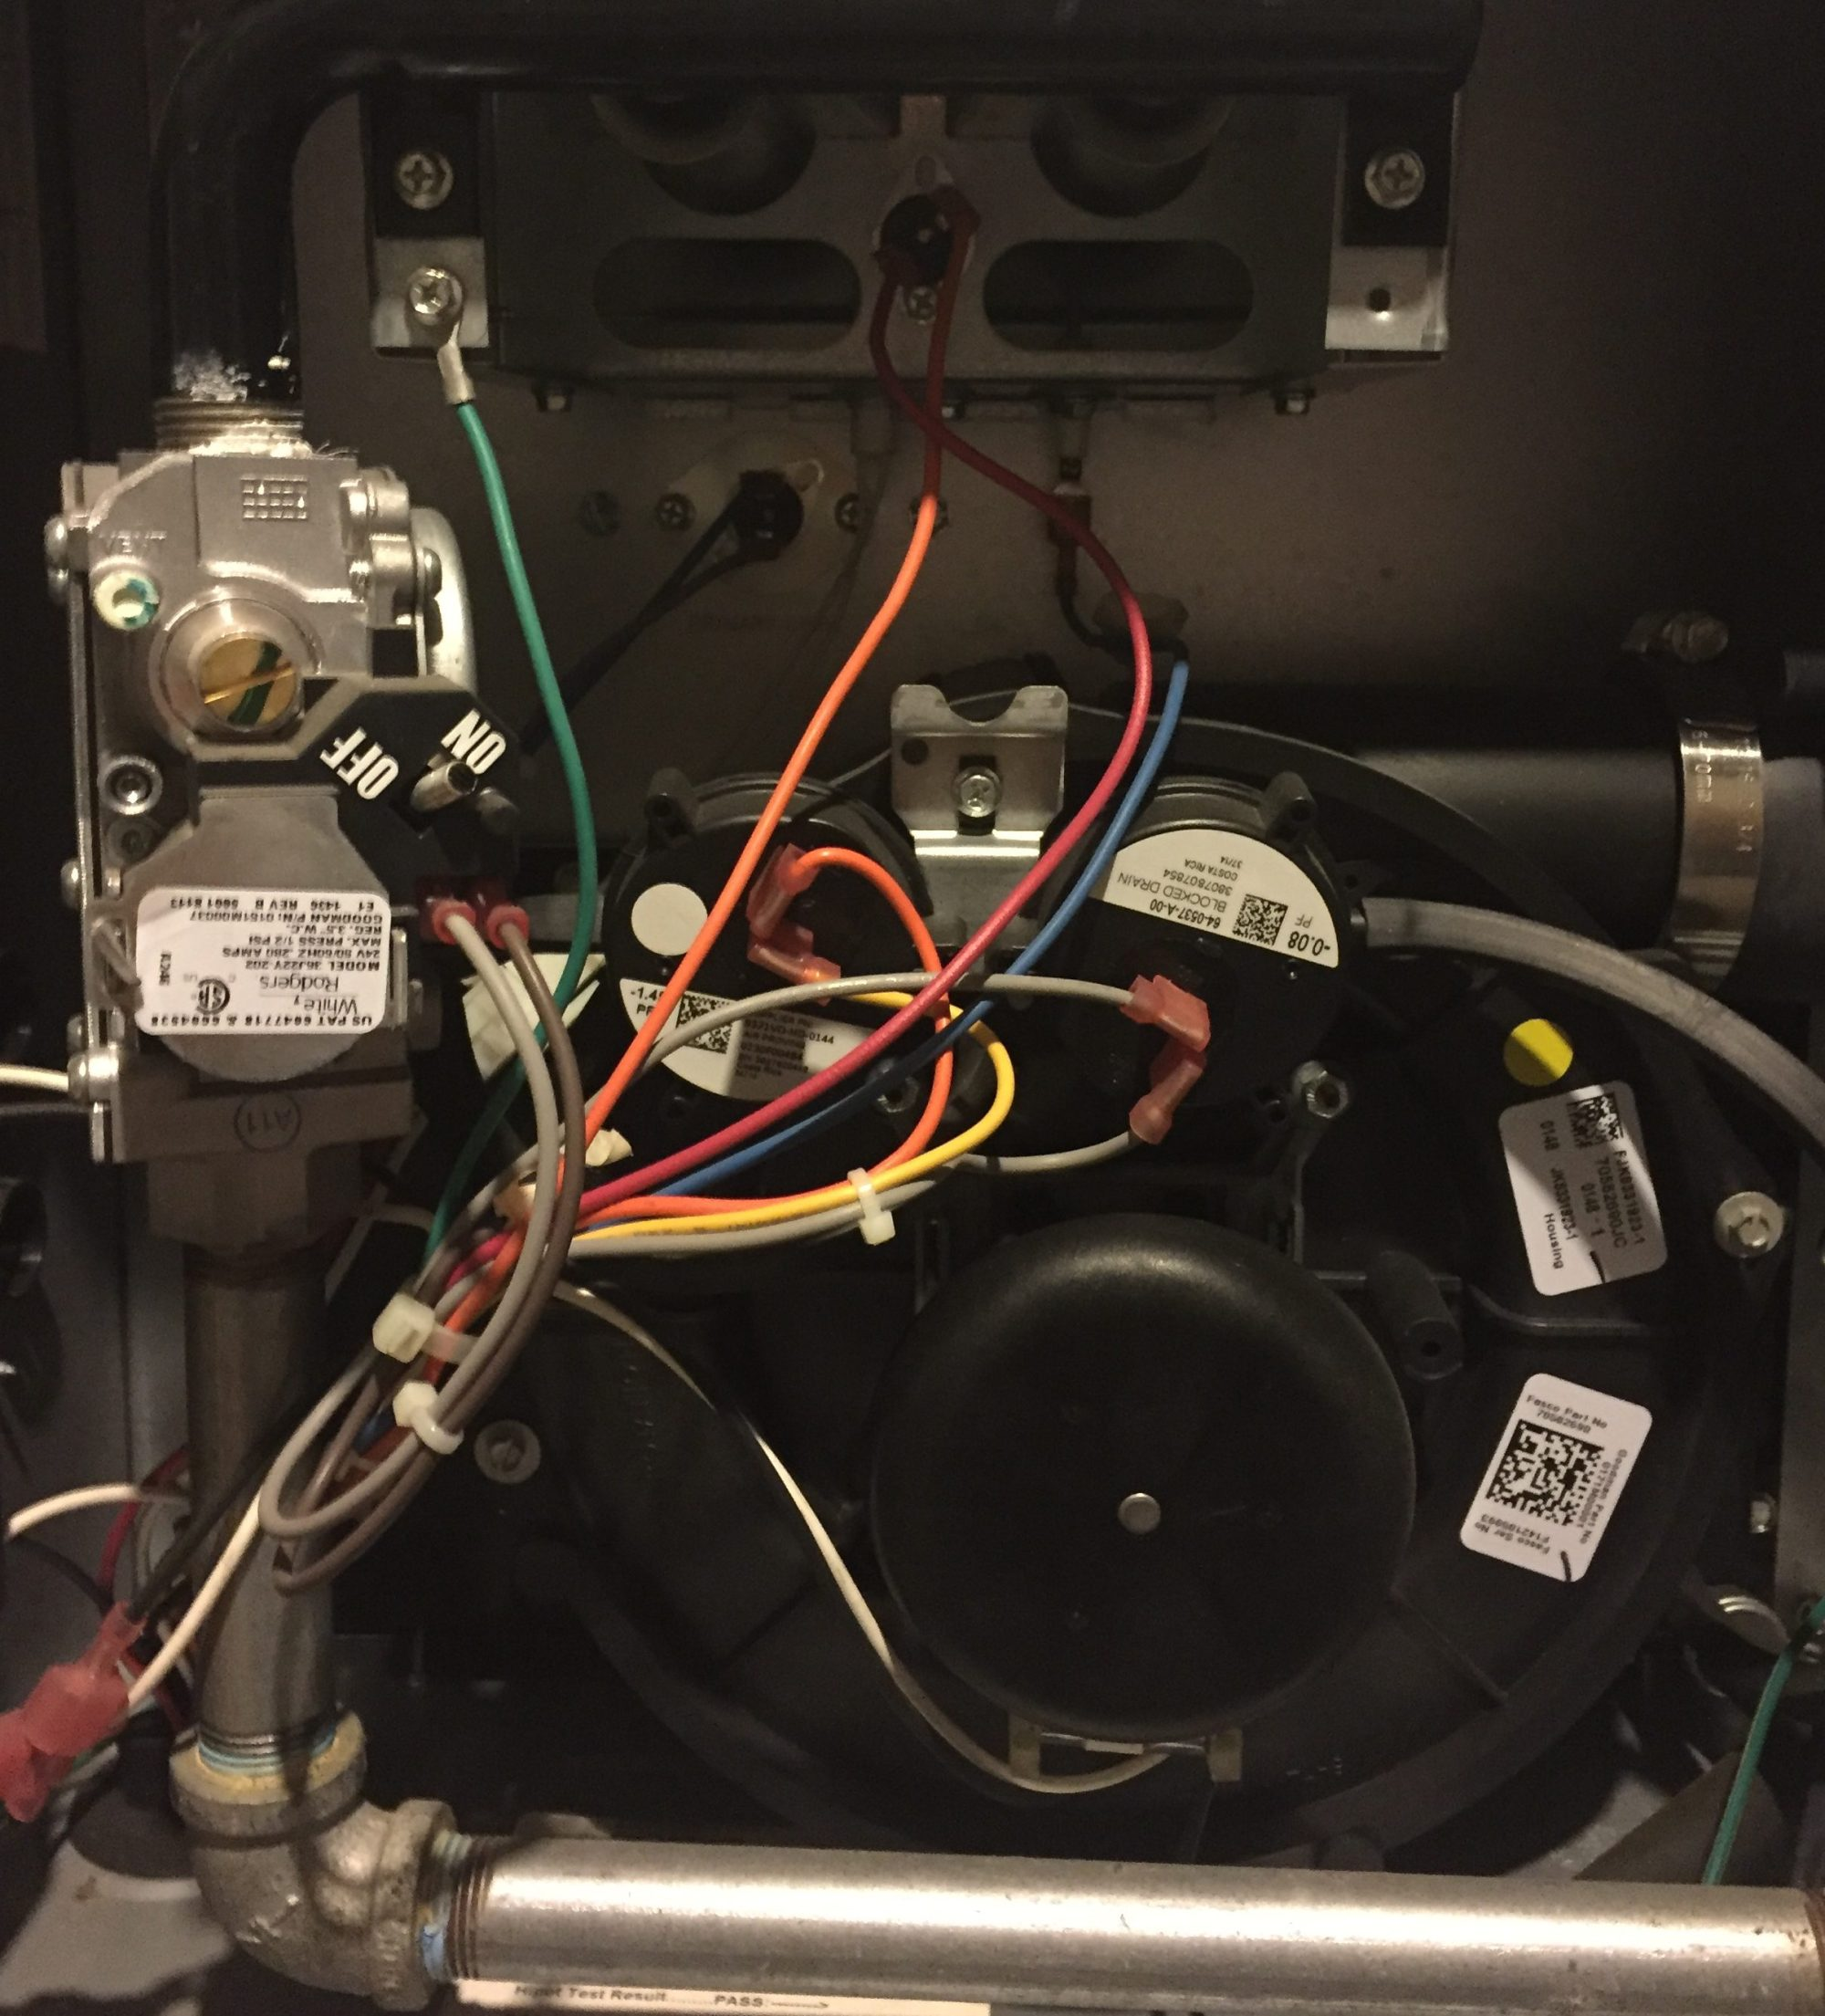 hight resolution of the inside of my furnace before my failed repair attempt source author